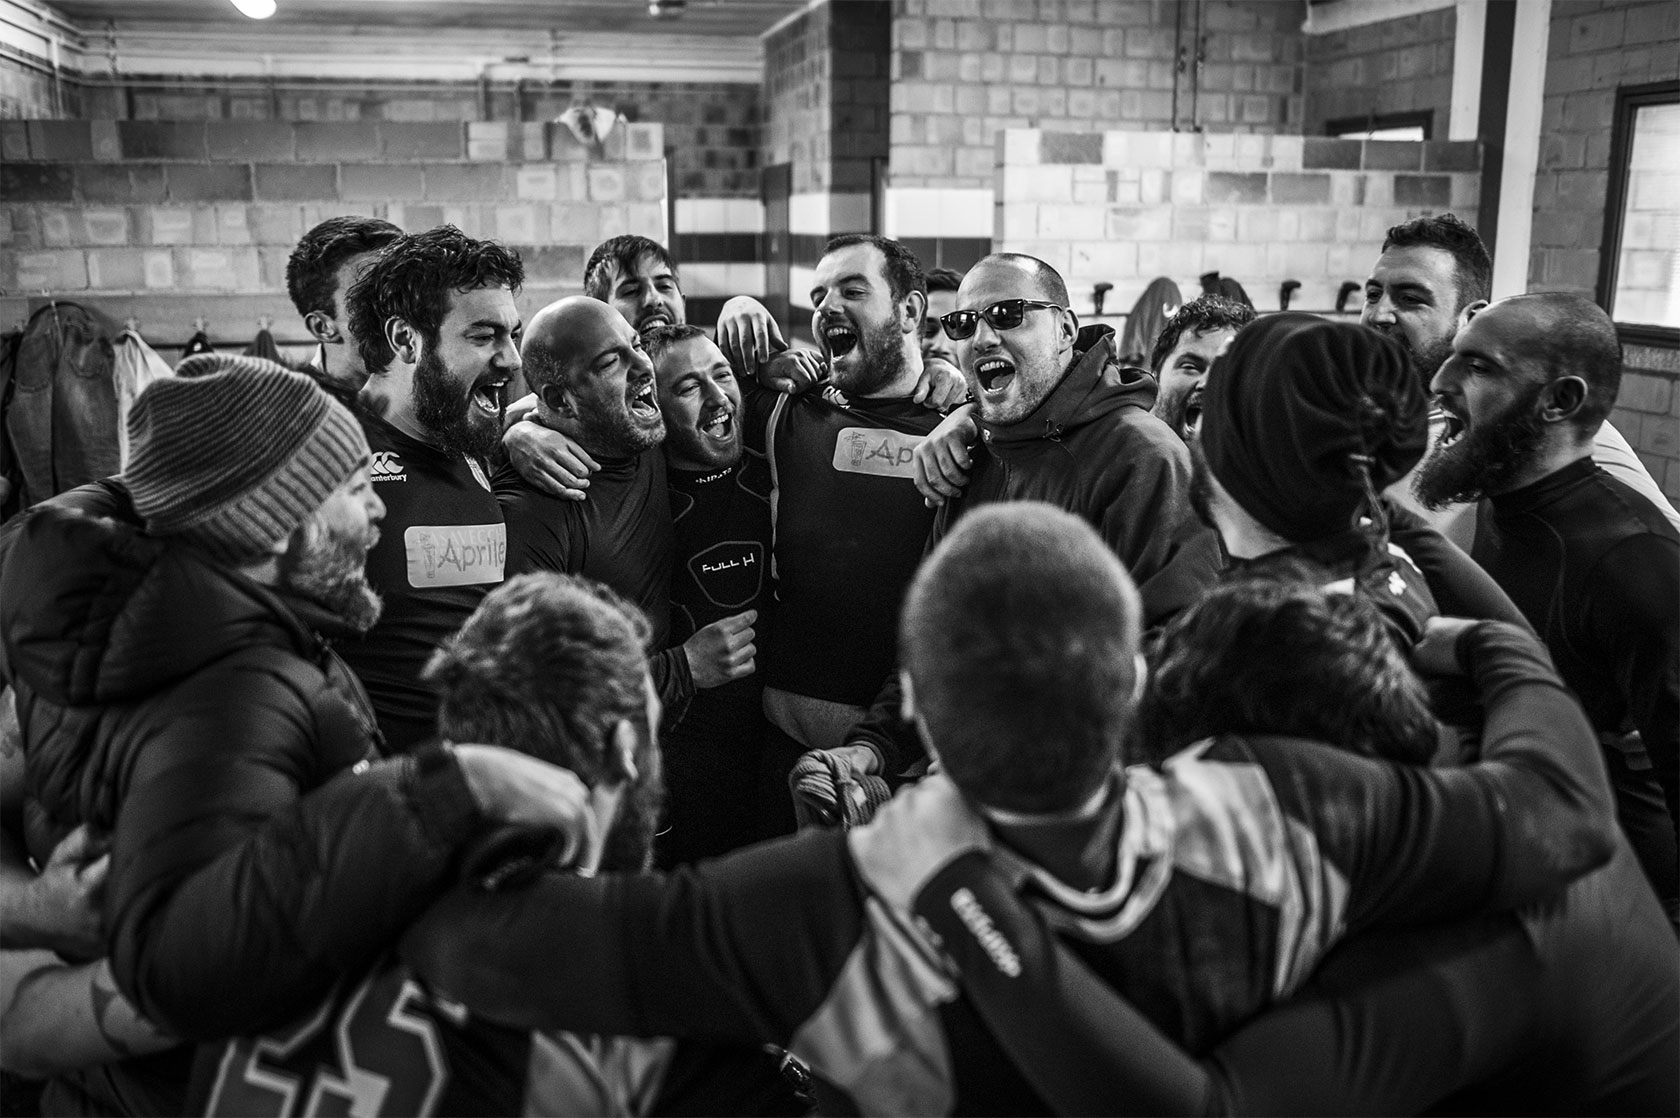 Reportage on rugby, everyday of rugby players, their training, the matches and the third time. Alessio Vissani